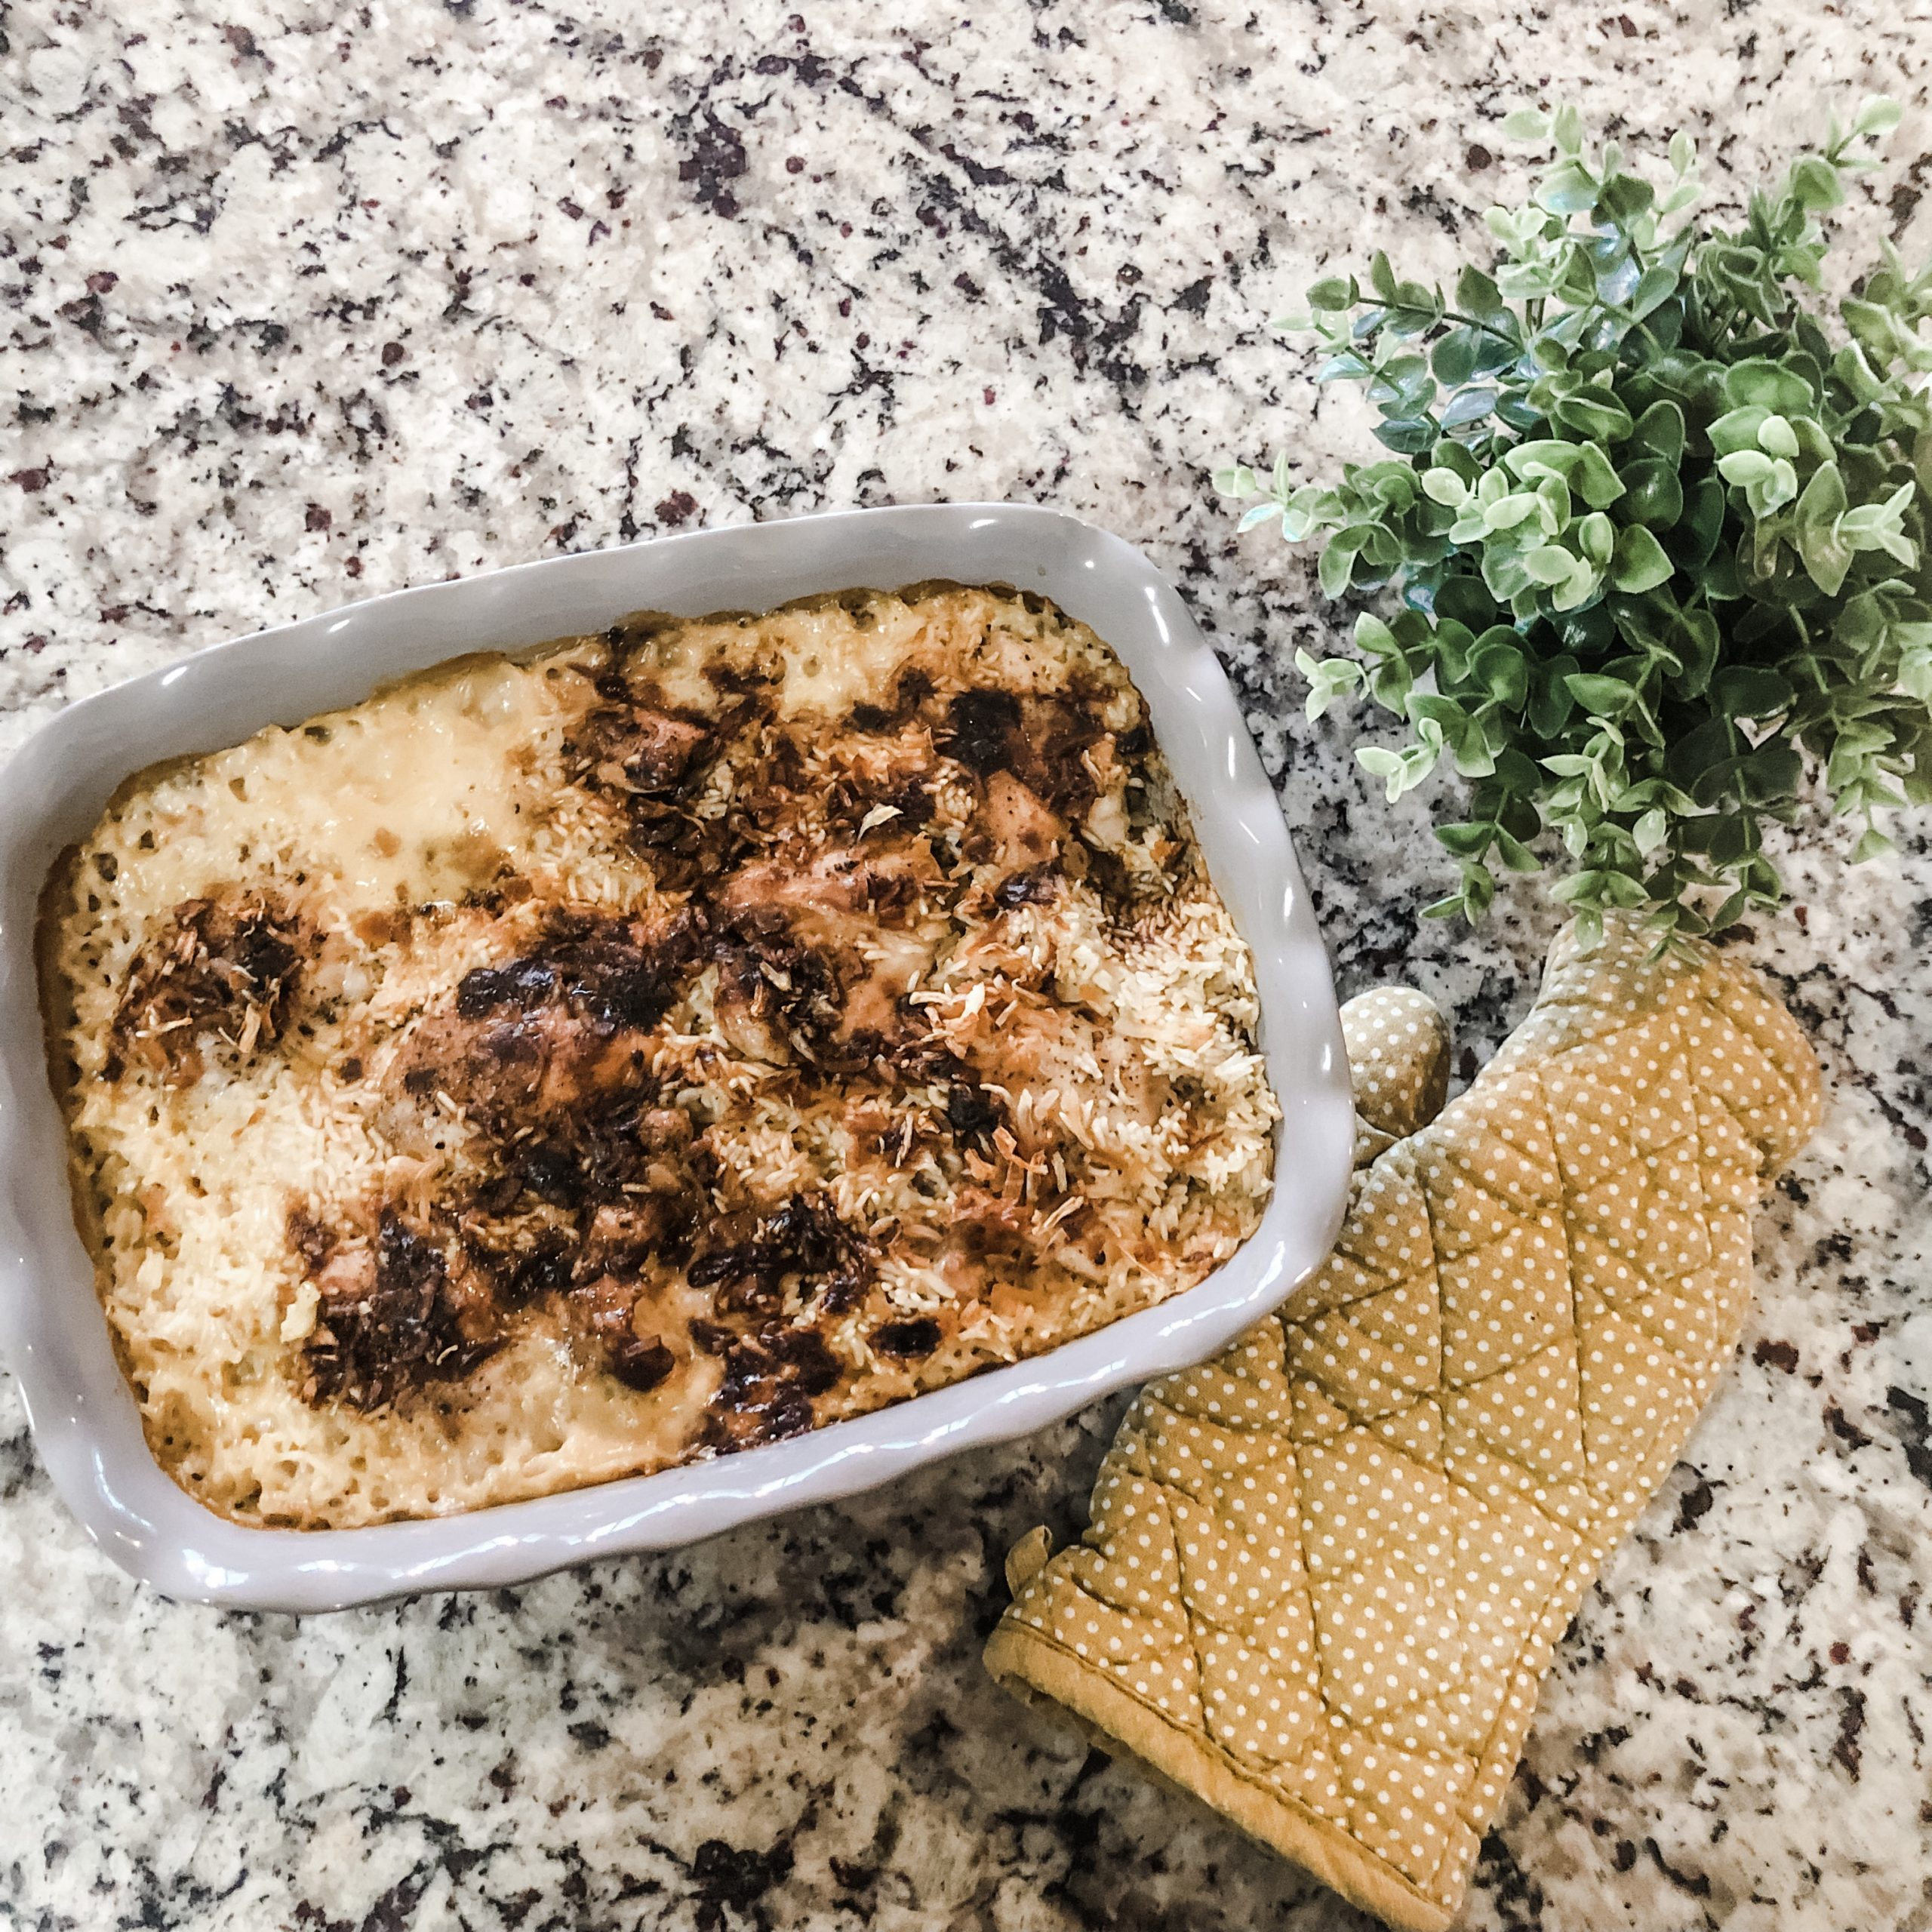 Baked chicken and rice in pan with greenery and oven mitt